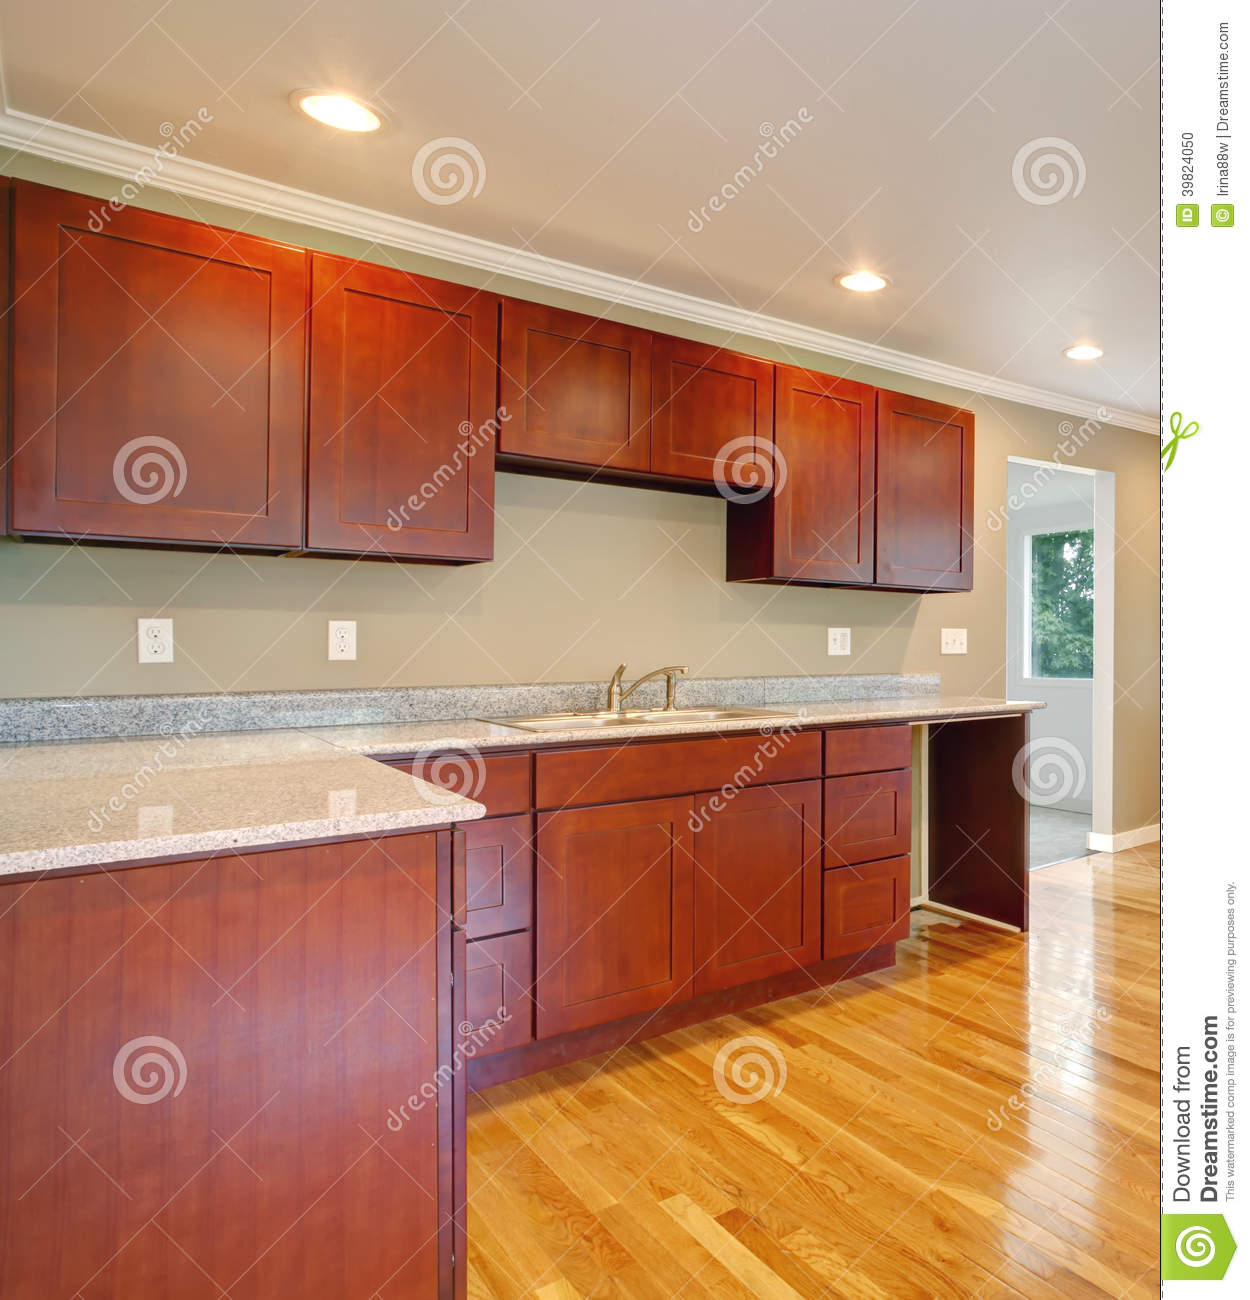 Empty Kitchen Cupboard: New Cherry Wood Cabinet Kitchen. Stock Photo